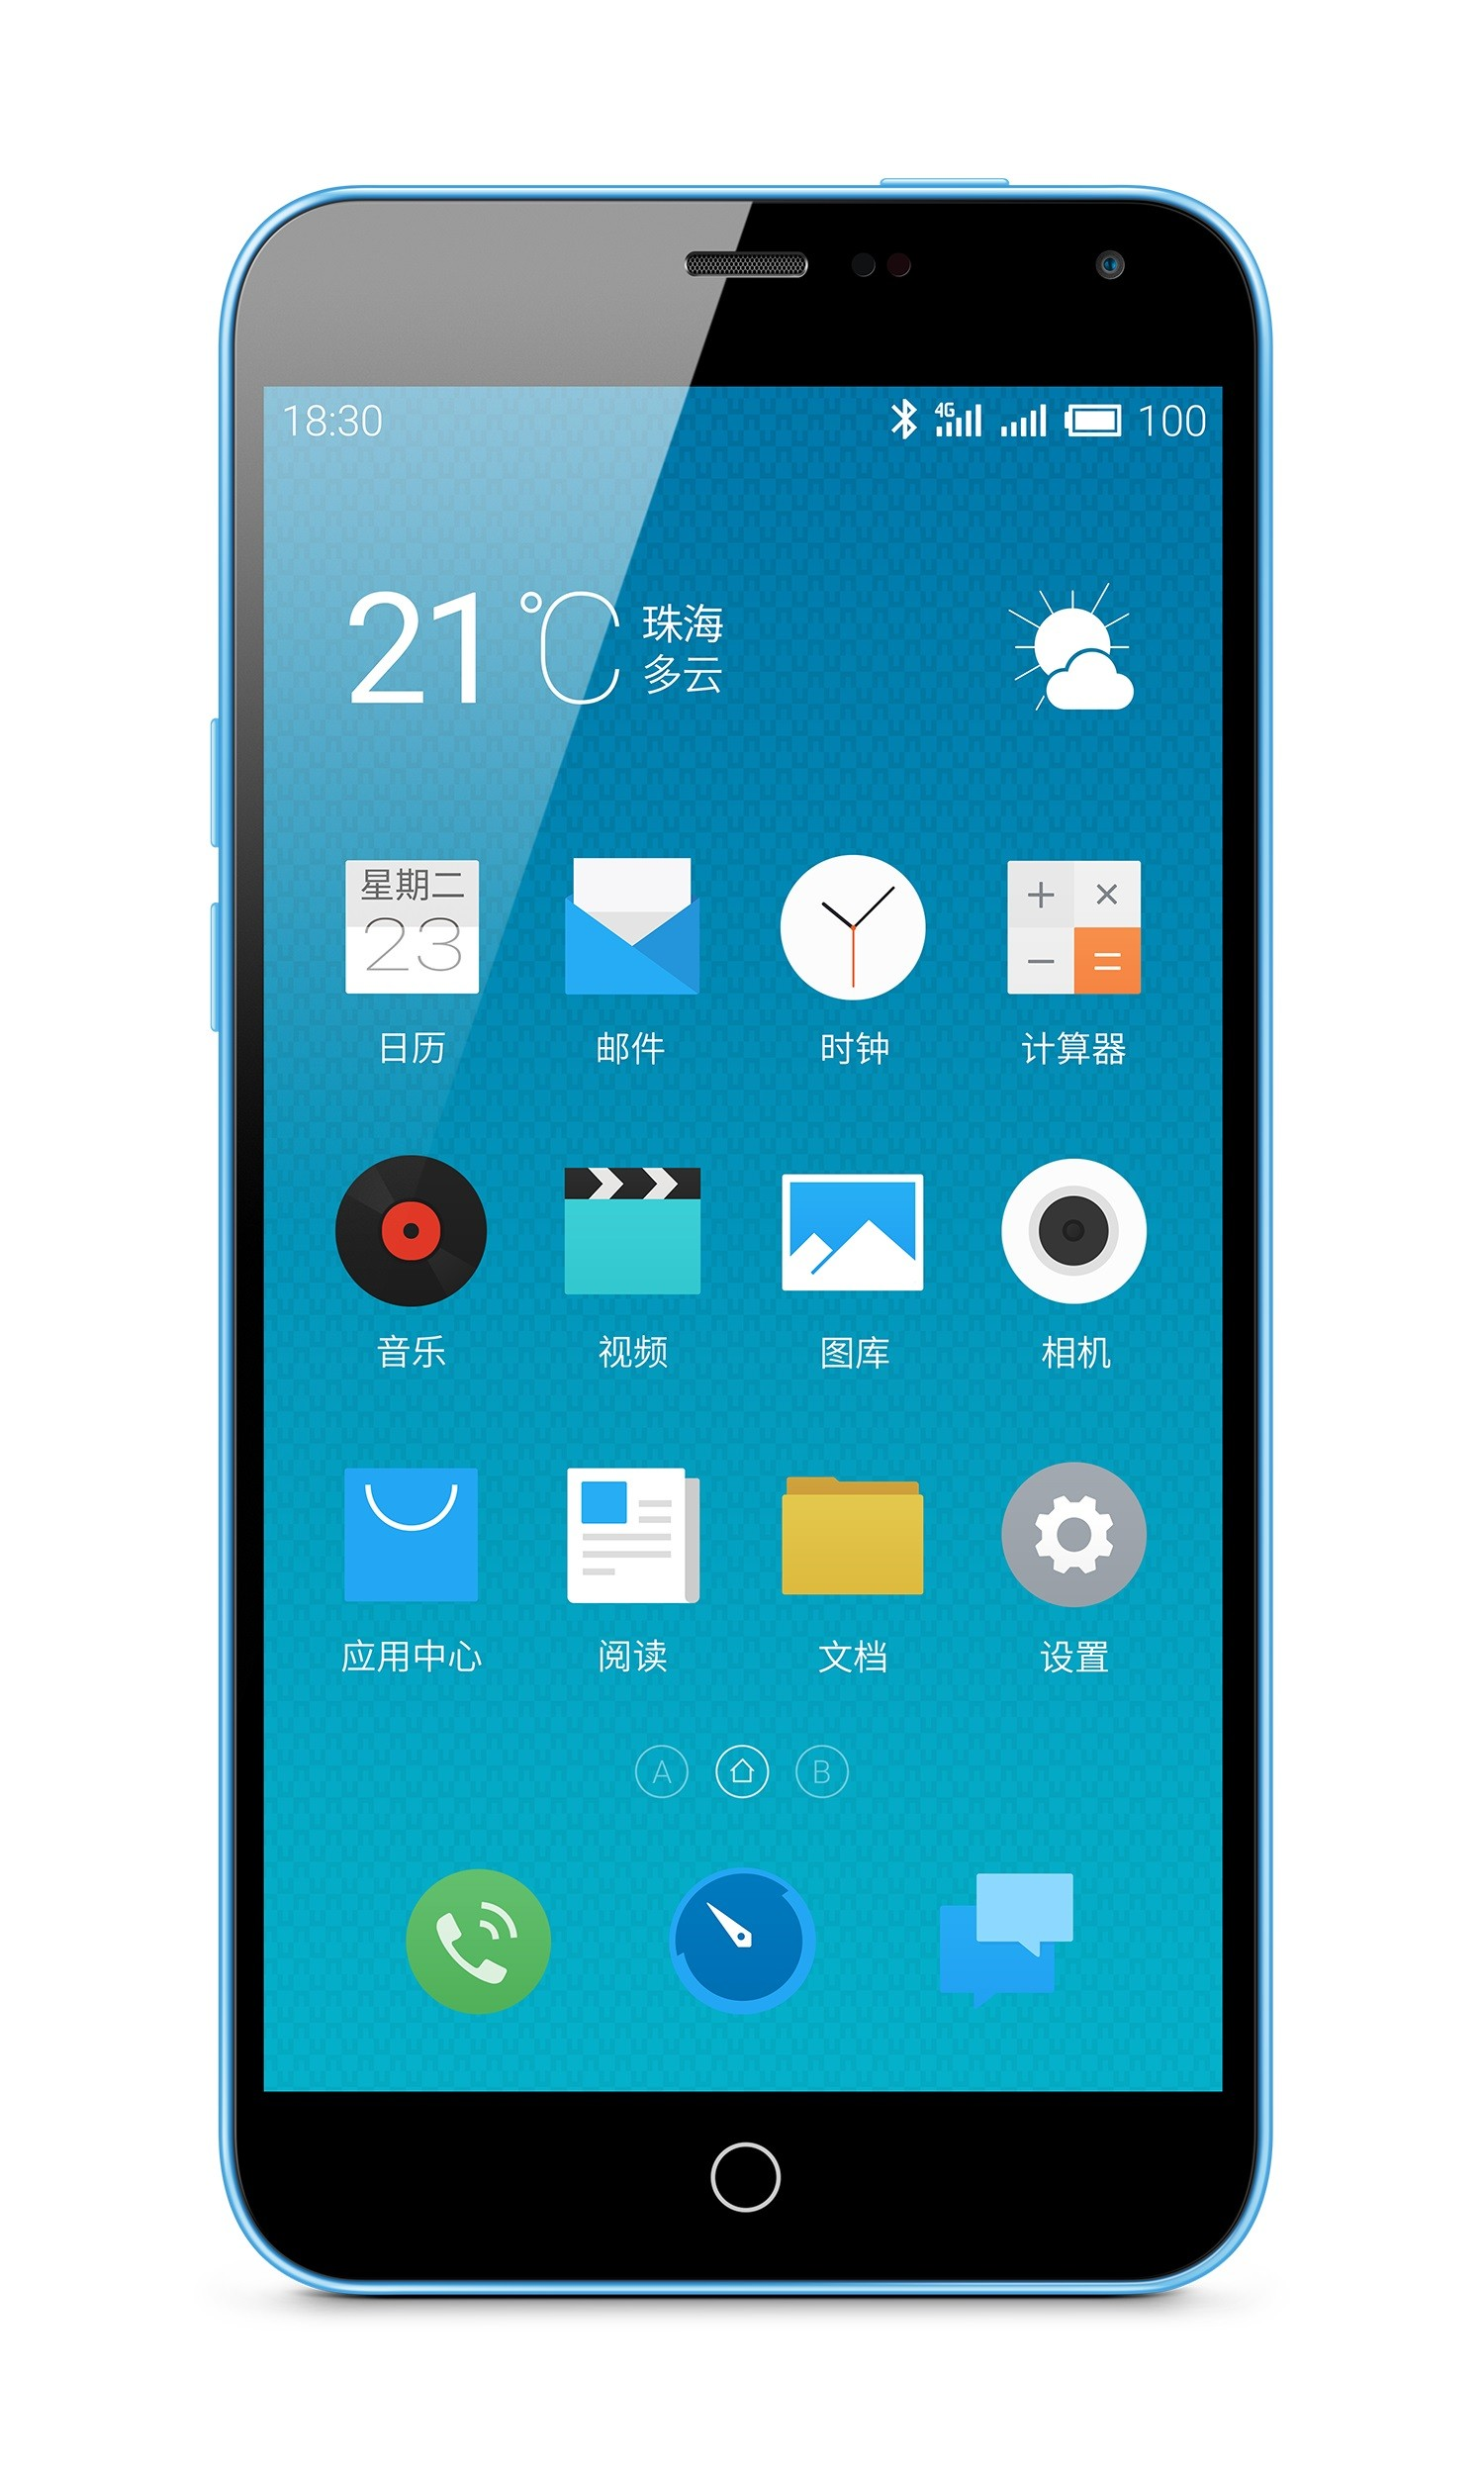 Meizu M1 Note 16gb Blanco Libre Meizu Blue Charm Note Is A Dirt Cheap Iphone 5c Clone For The Young